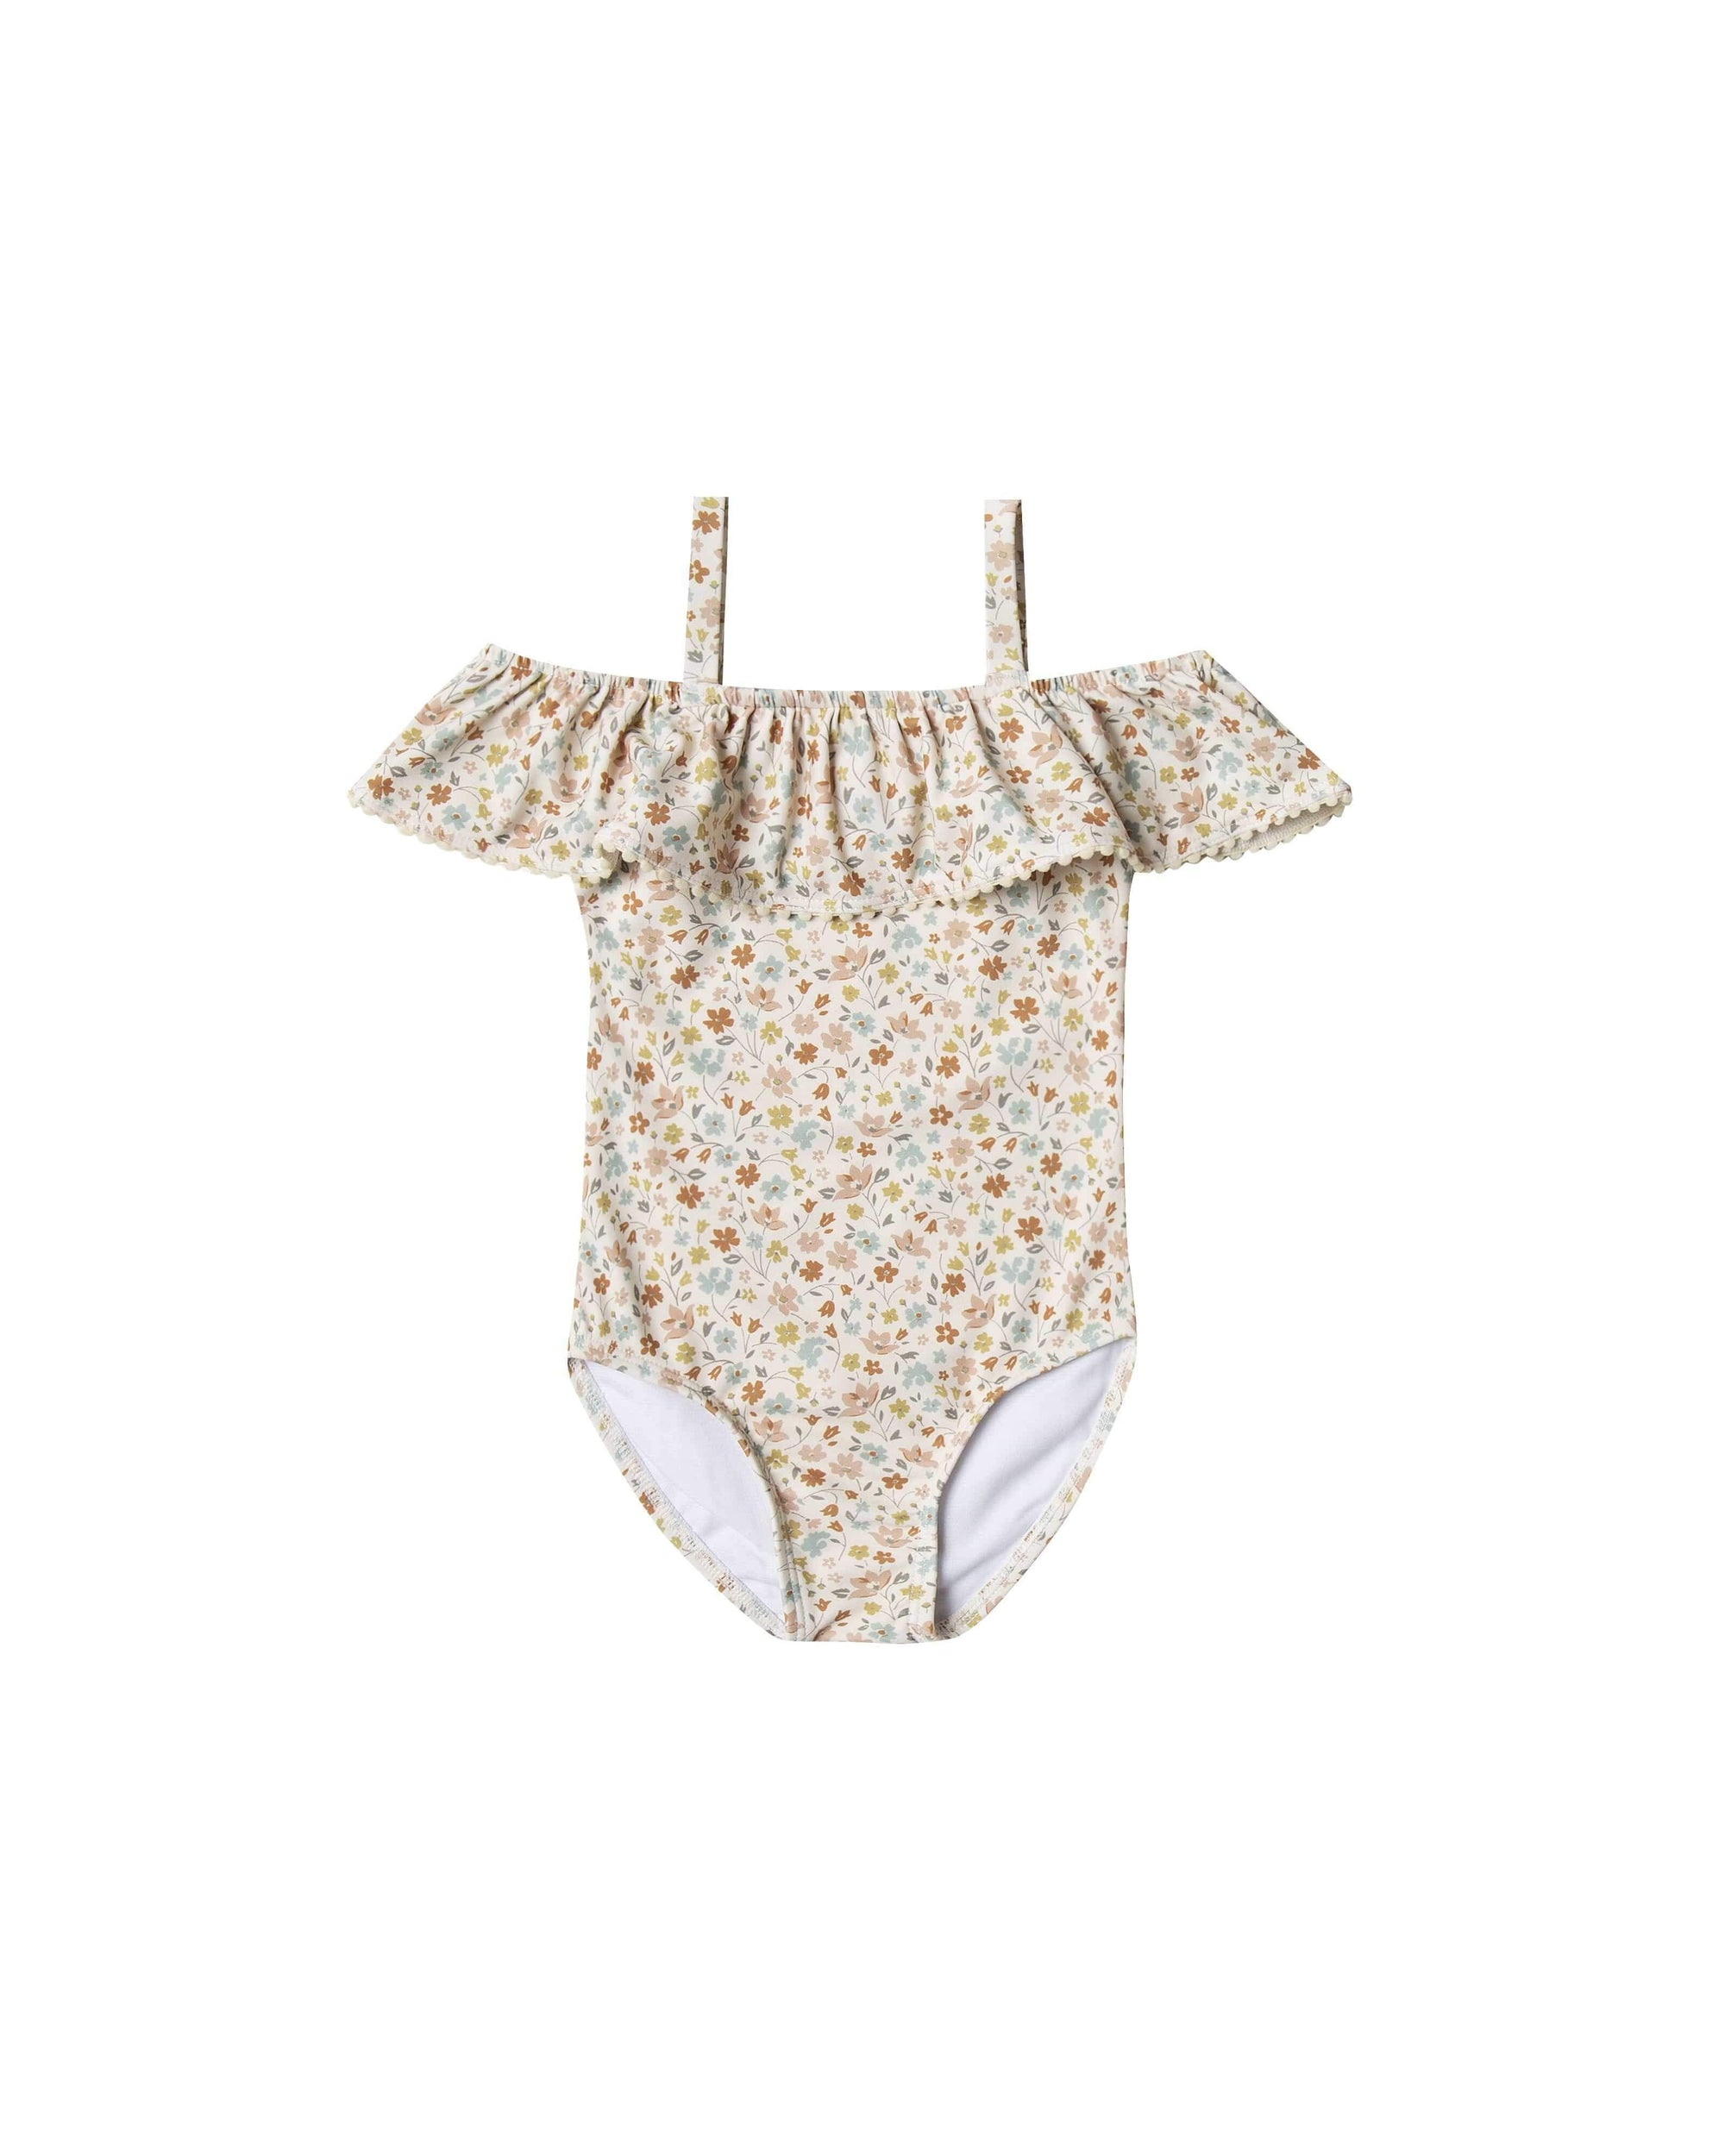 Rylee & Cru 1 Piece Swimsuit Flower Field One-piece - Natural